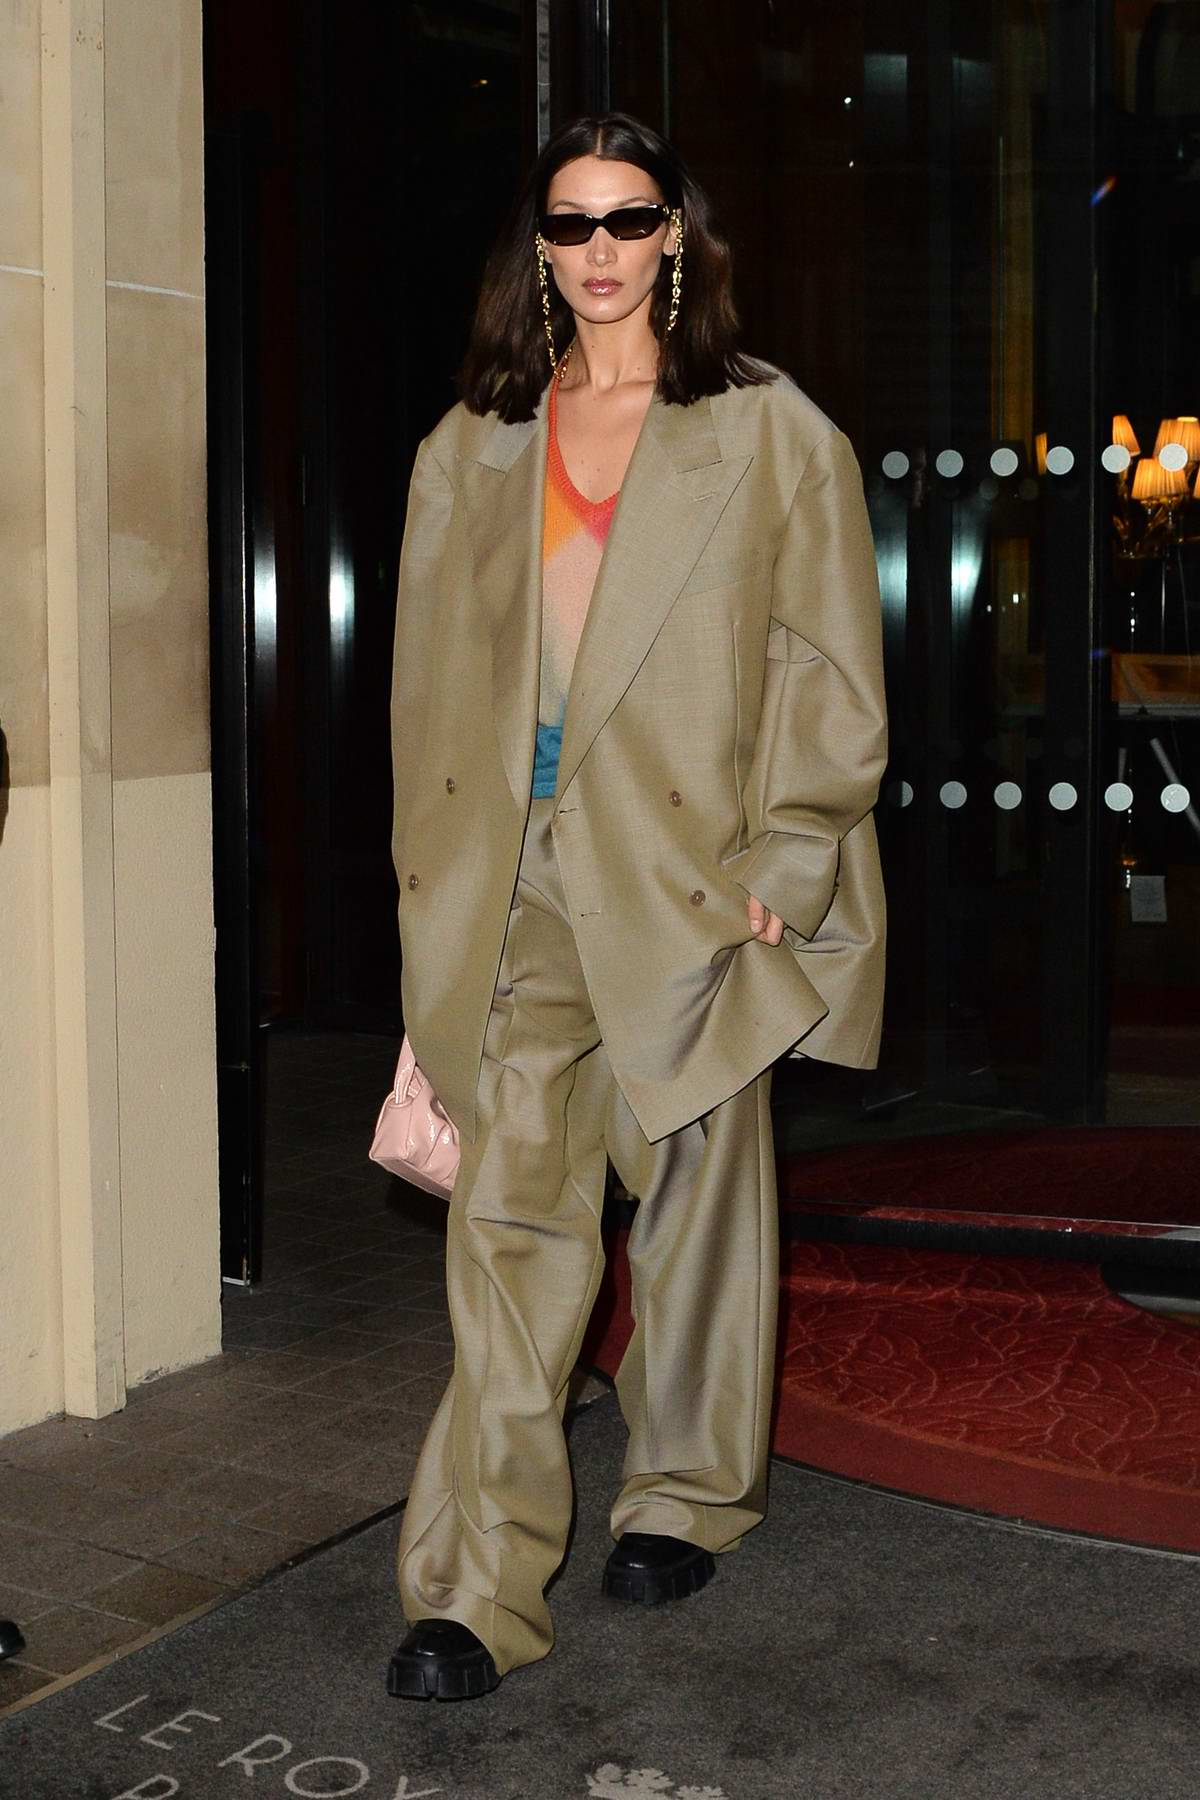 Bella Hadid seen wearing an oversized suit as she heads out during Paris Fashion Week 2020 in Paris, France